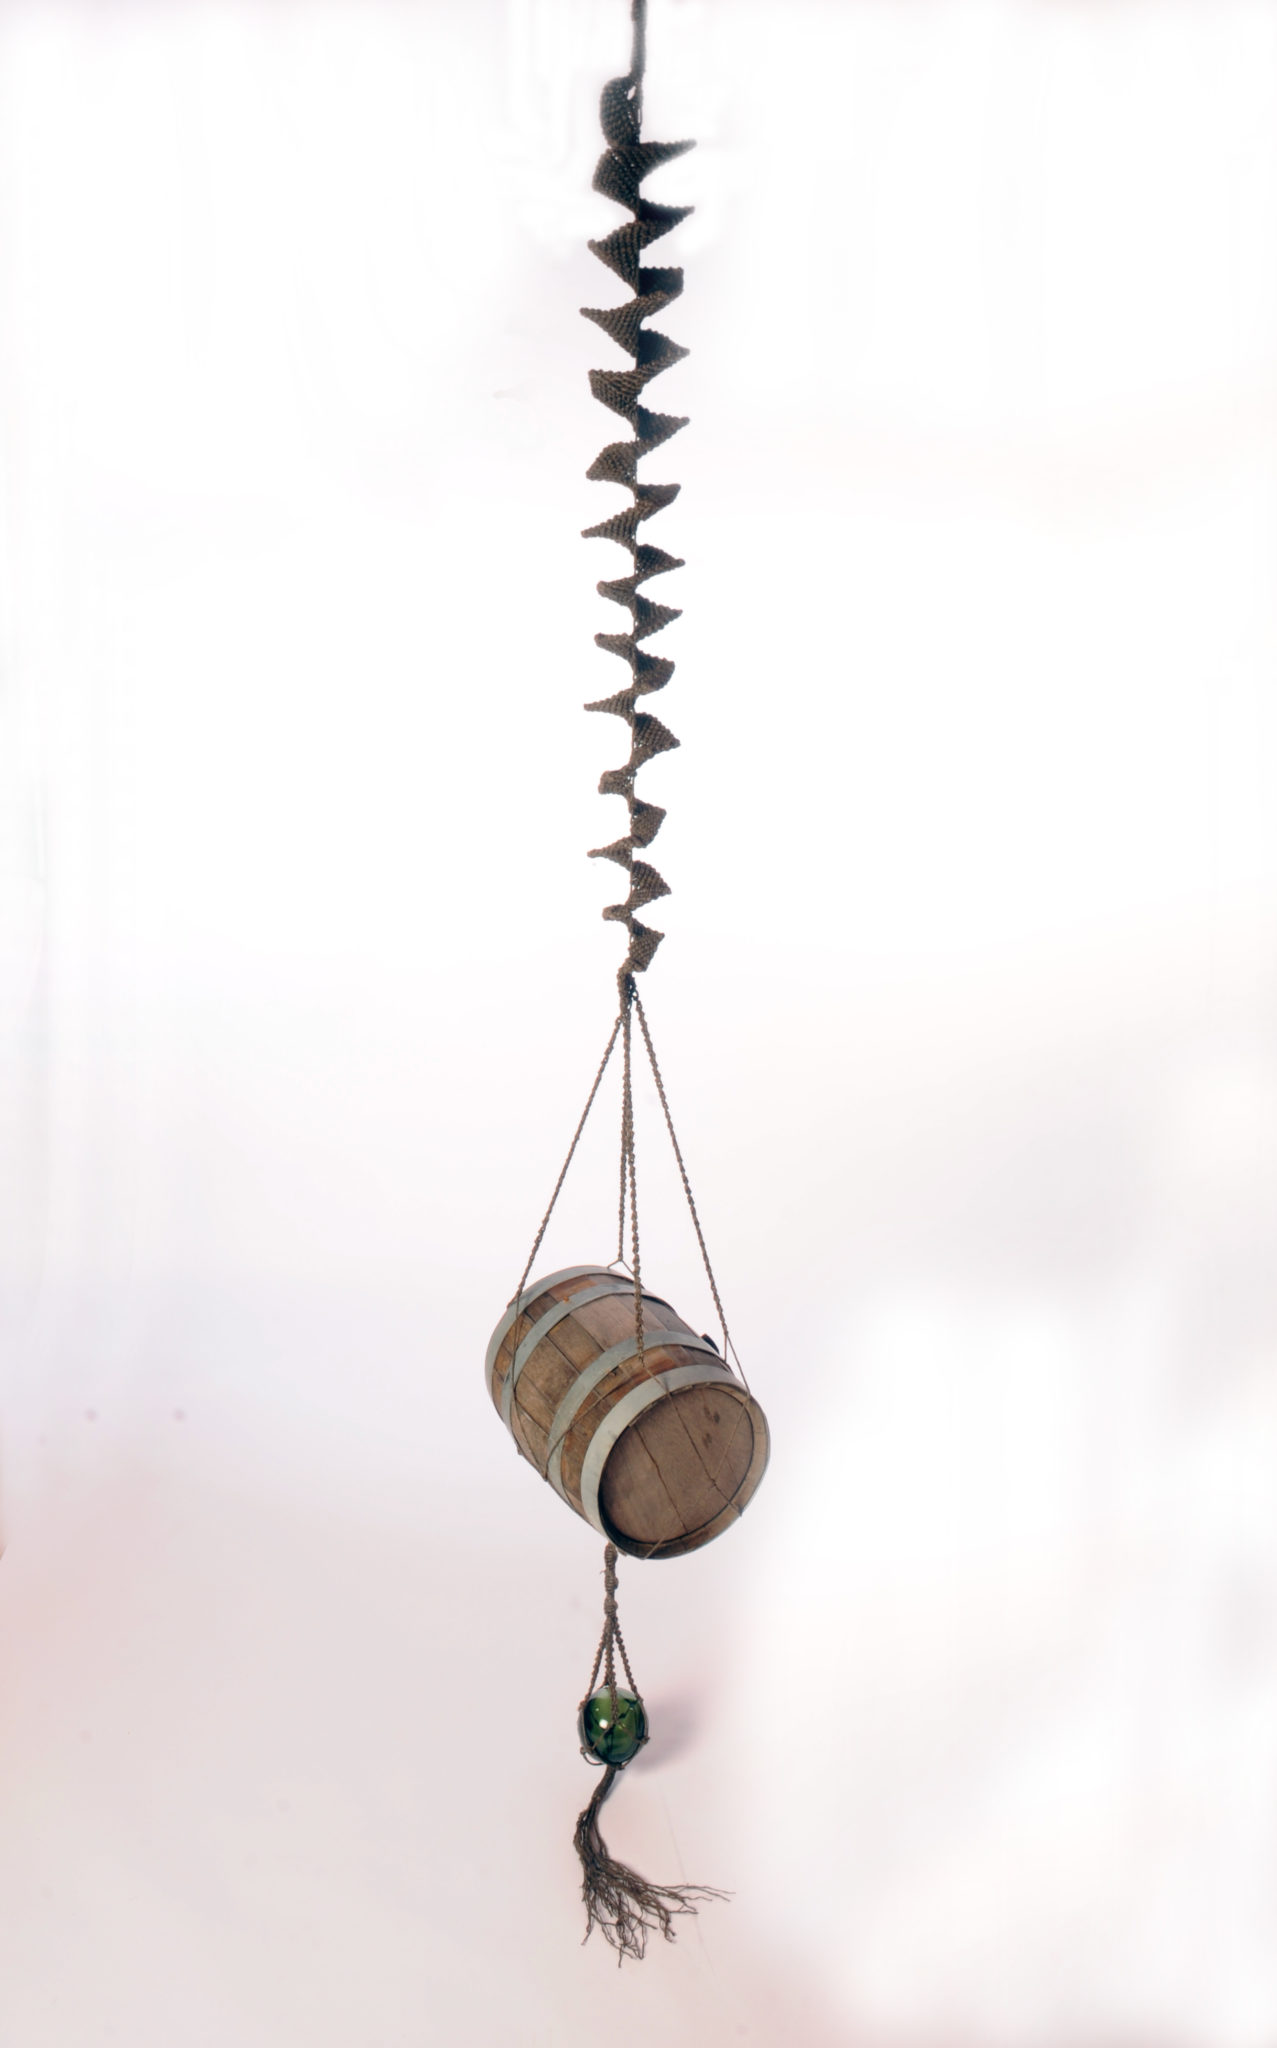 To the Four Corners of the Earth - 360 x 130 x 43 - 200 metres of hand knotted tarred marlin rope, four oak pin barrels - 2013 - one